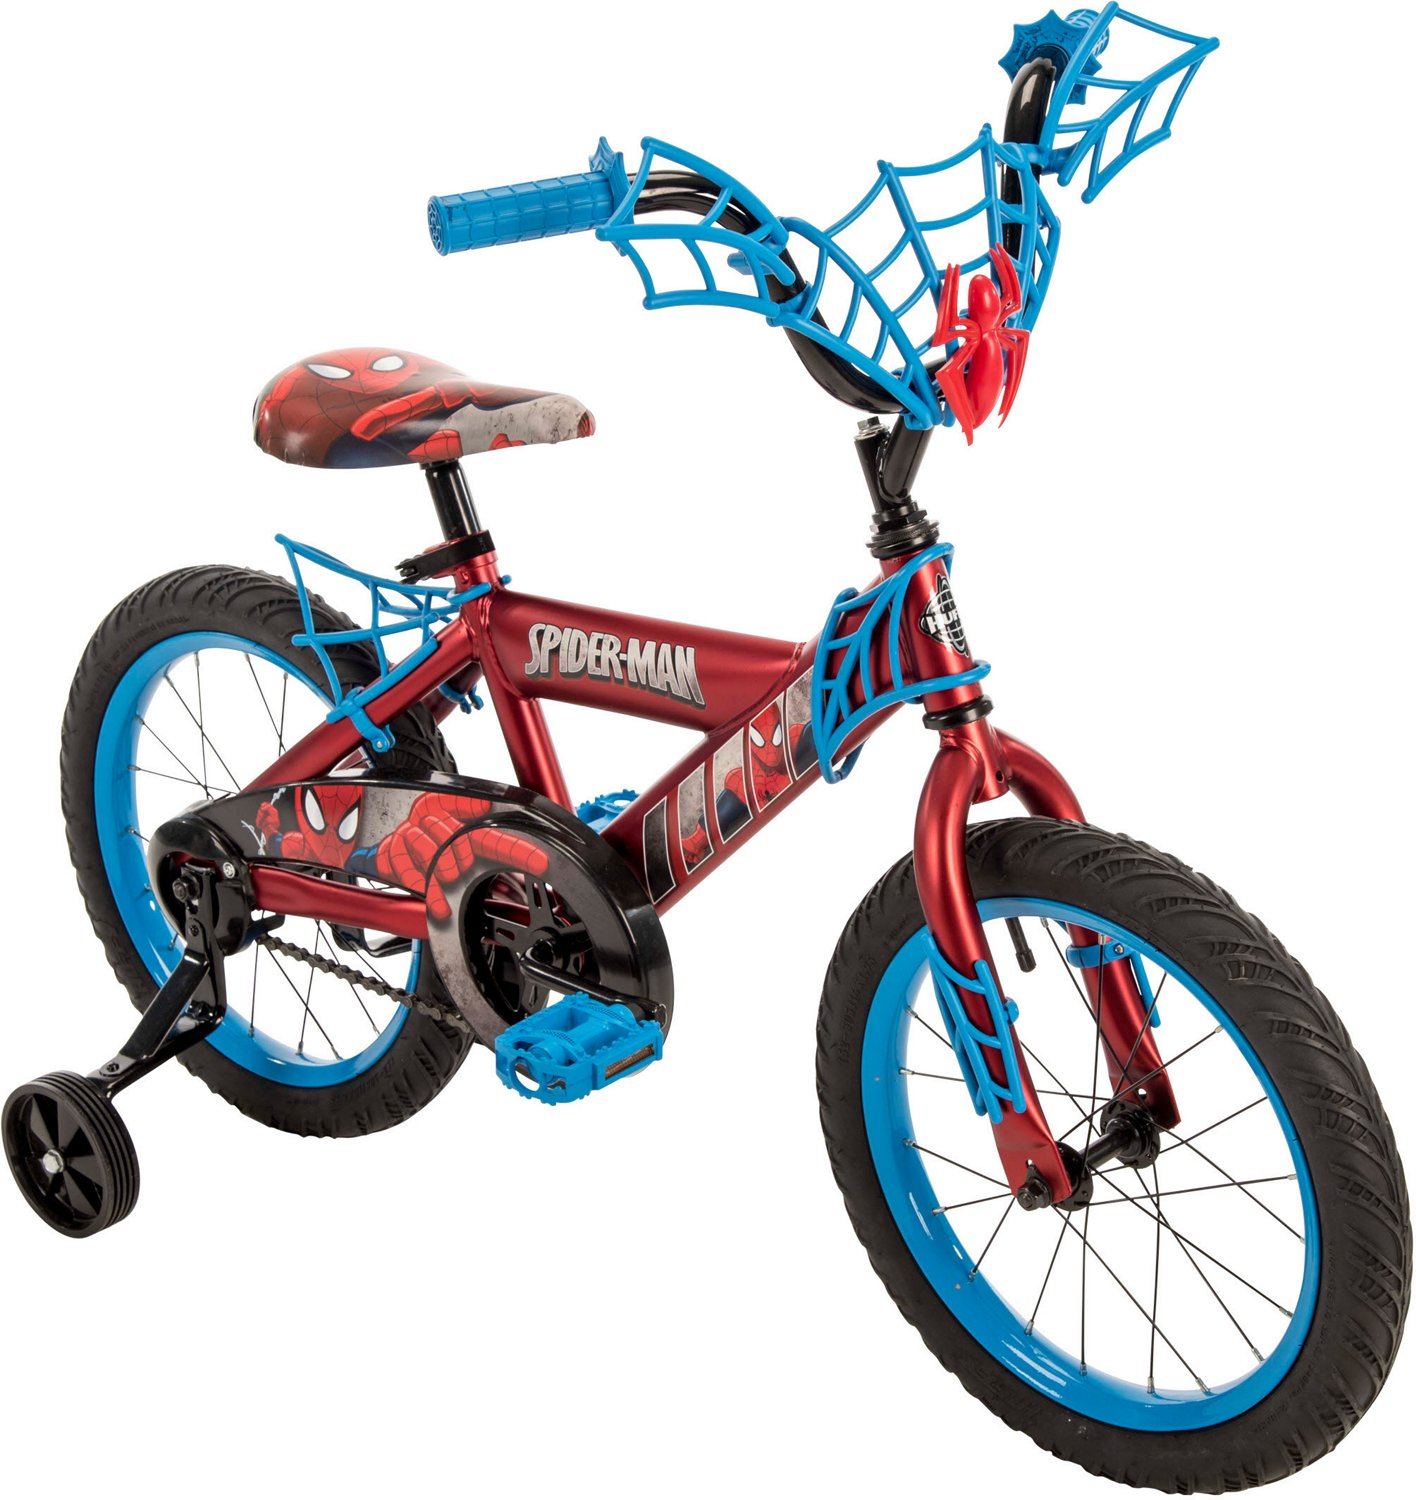 Boys Bikes 20 Inch Schwinn Ozone 500 Huffy Academy Bmx Bike Parts Diagram Display Product Reviews For Marvel Spider Man 16 In Bicycle